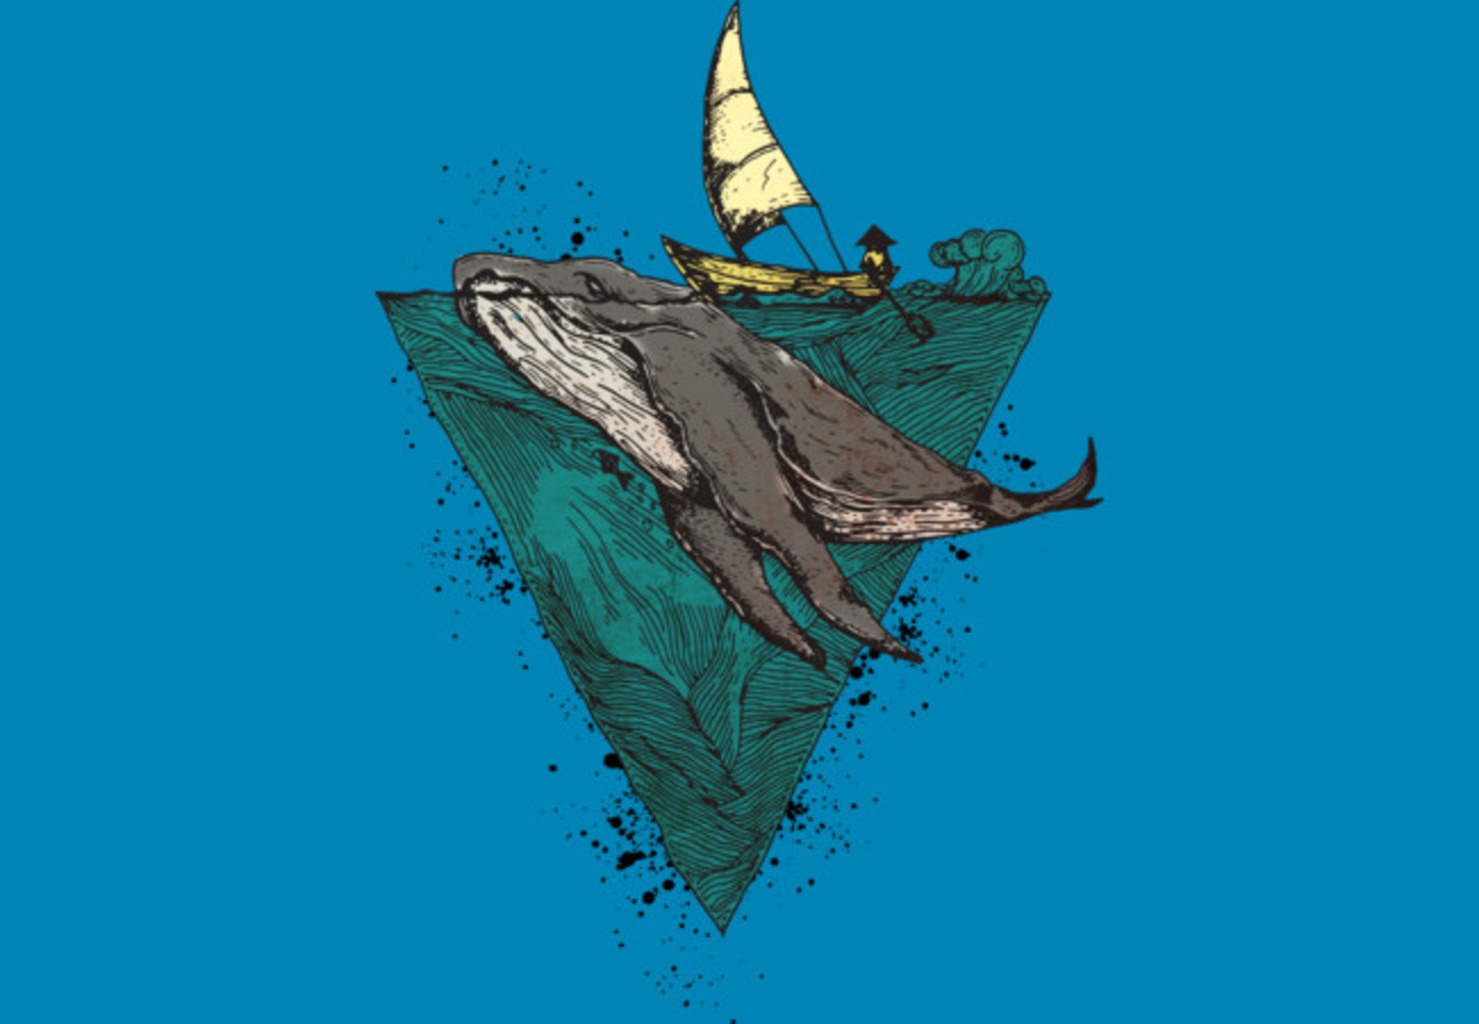 Design by Humans: Whale geometric